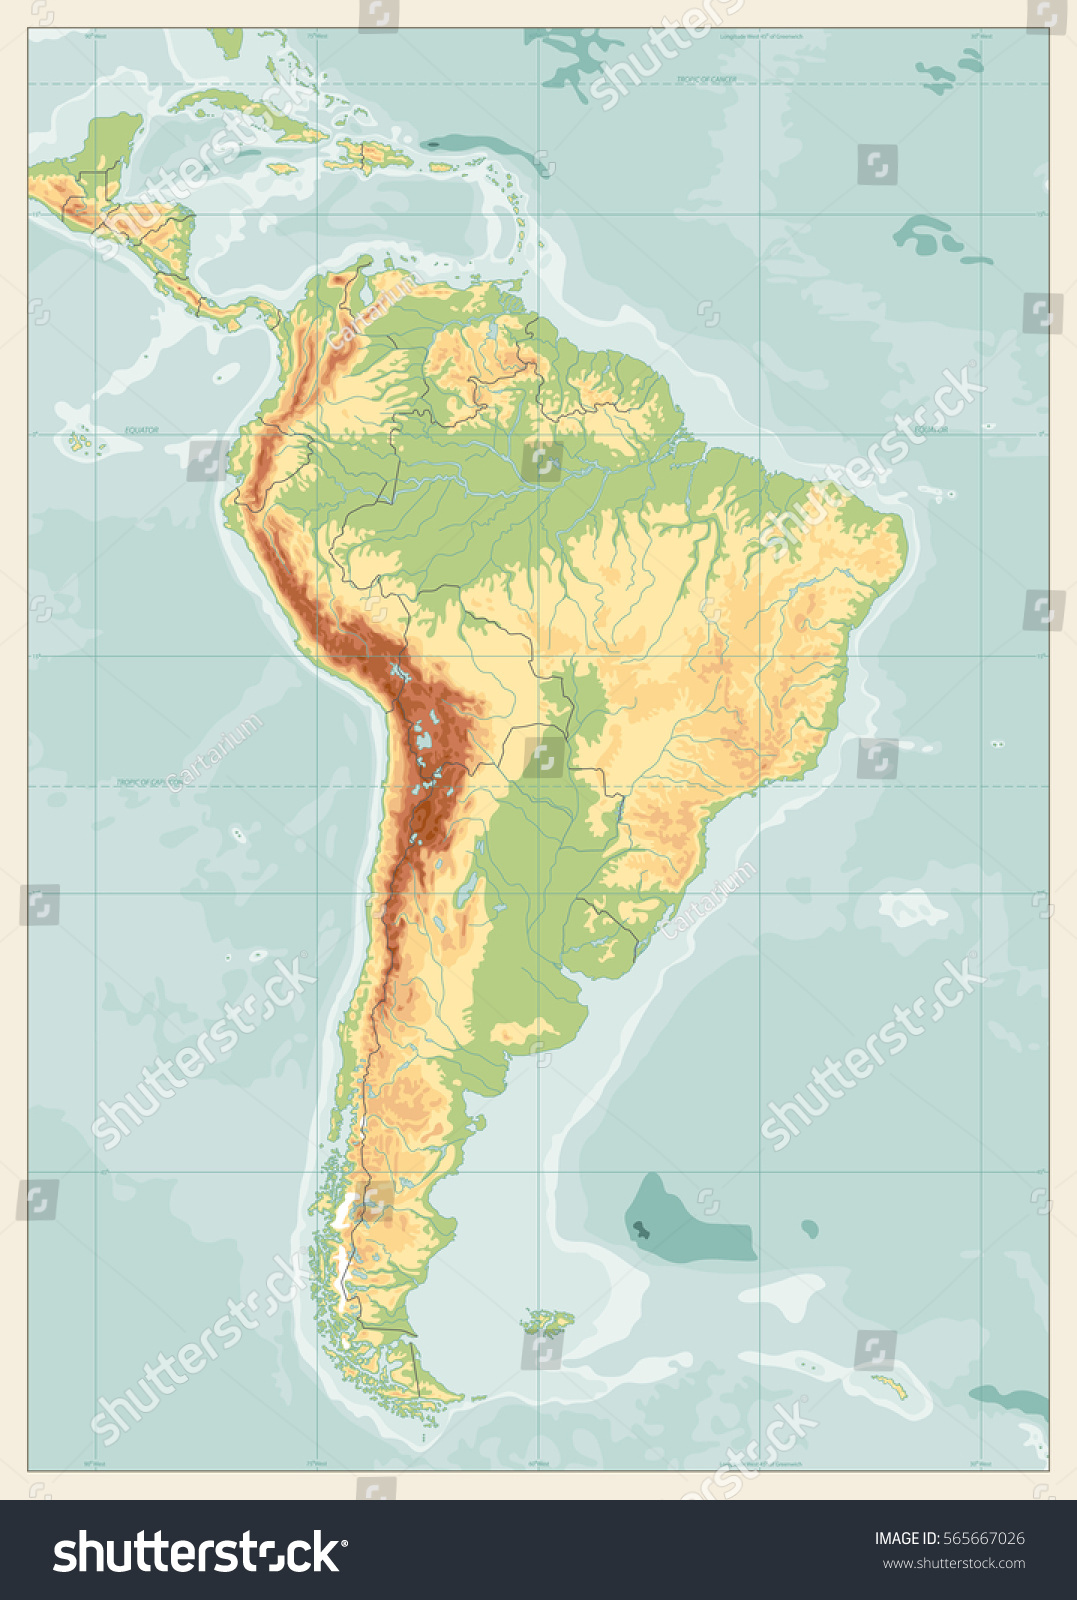 South America Detailed Physical Map Global Stock Vector - South america relief map peru